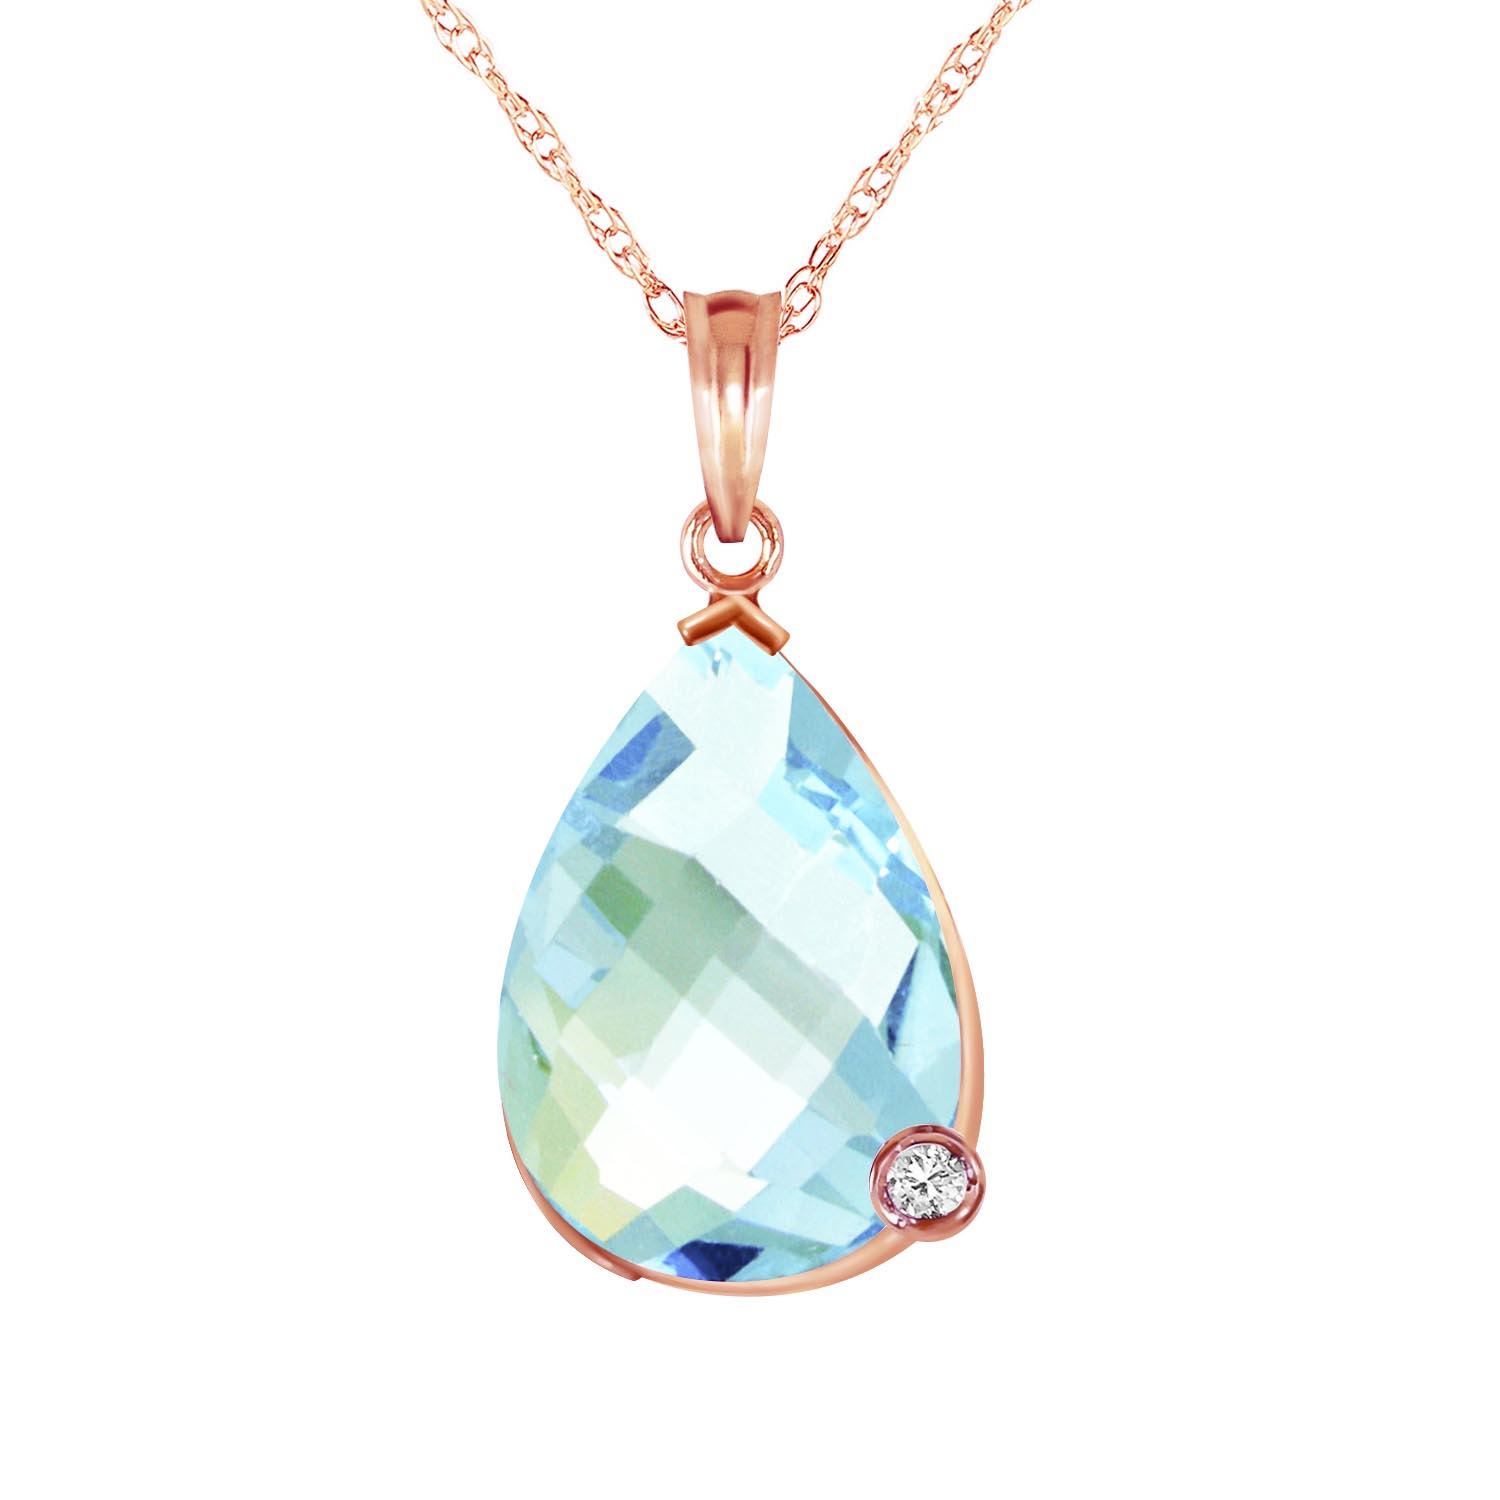 Blue Topaz and Diamond Chequer Pendant Necklace 6.5ct in 9ct Rose Gold